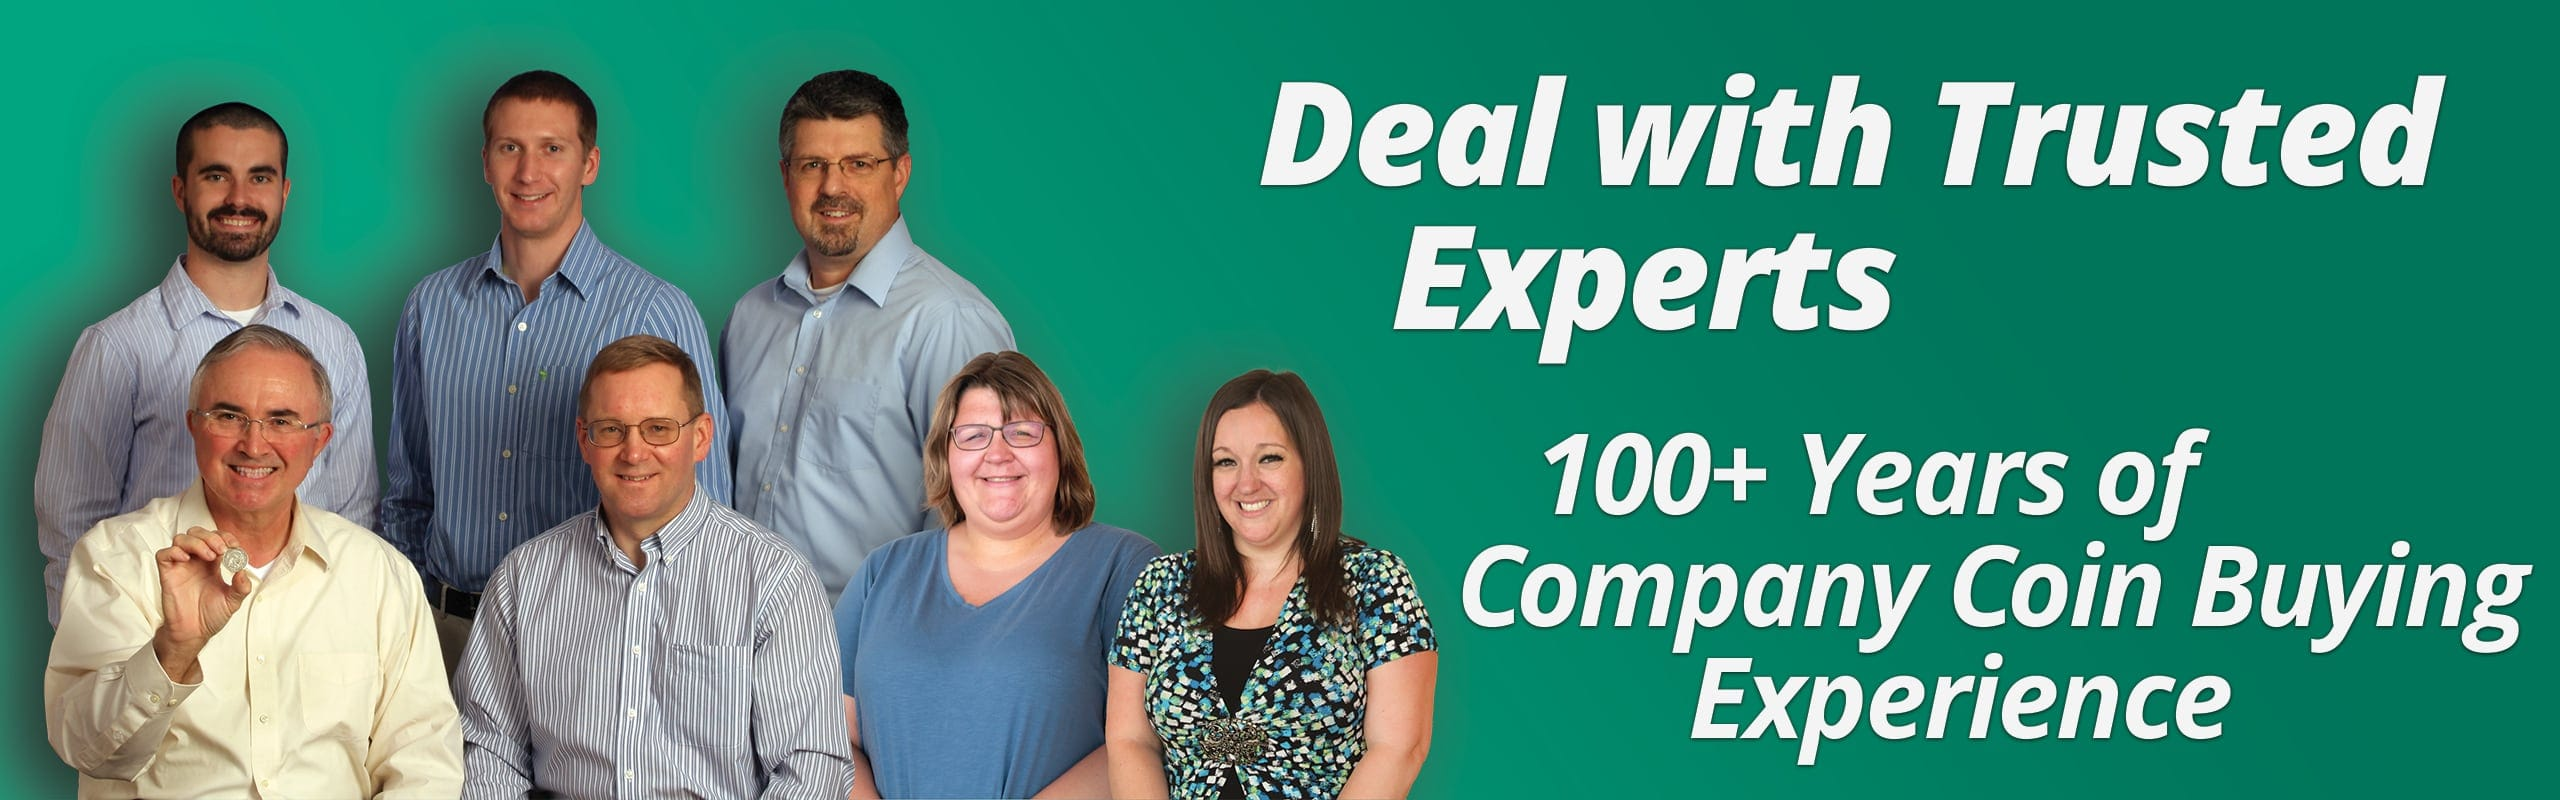 Deal with the experts - established and 75 years strong